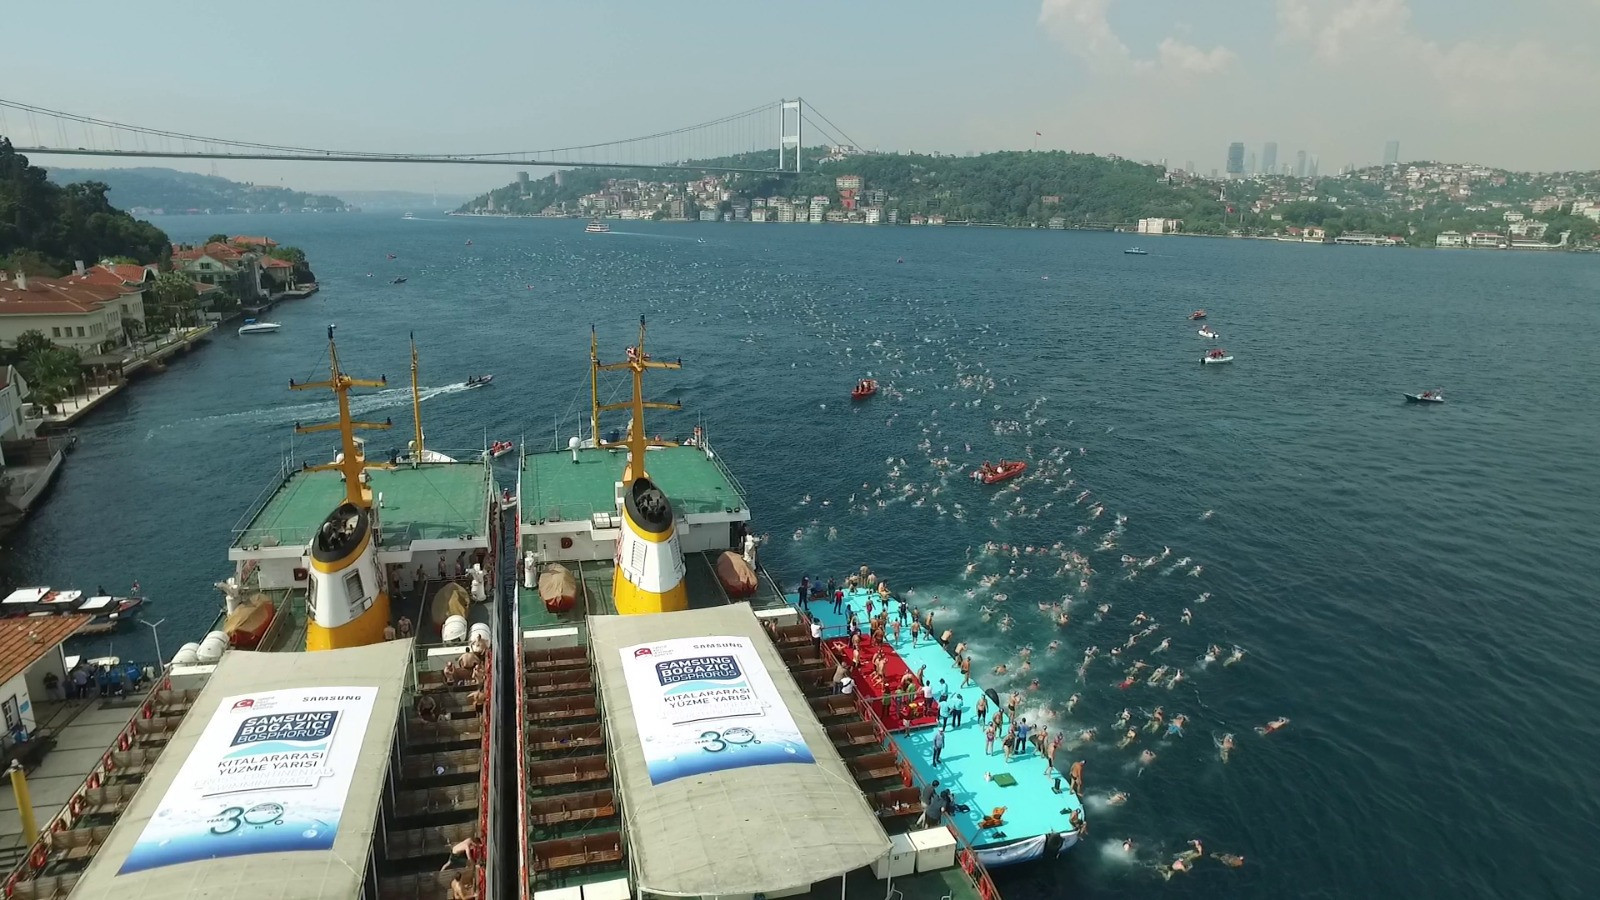 Over 2400 swimmers took part in the 30th Samsung Bosphorus Cross-Continental Swimming Race in Istanbul on Sunday (July 22) ©TOC